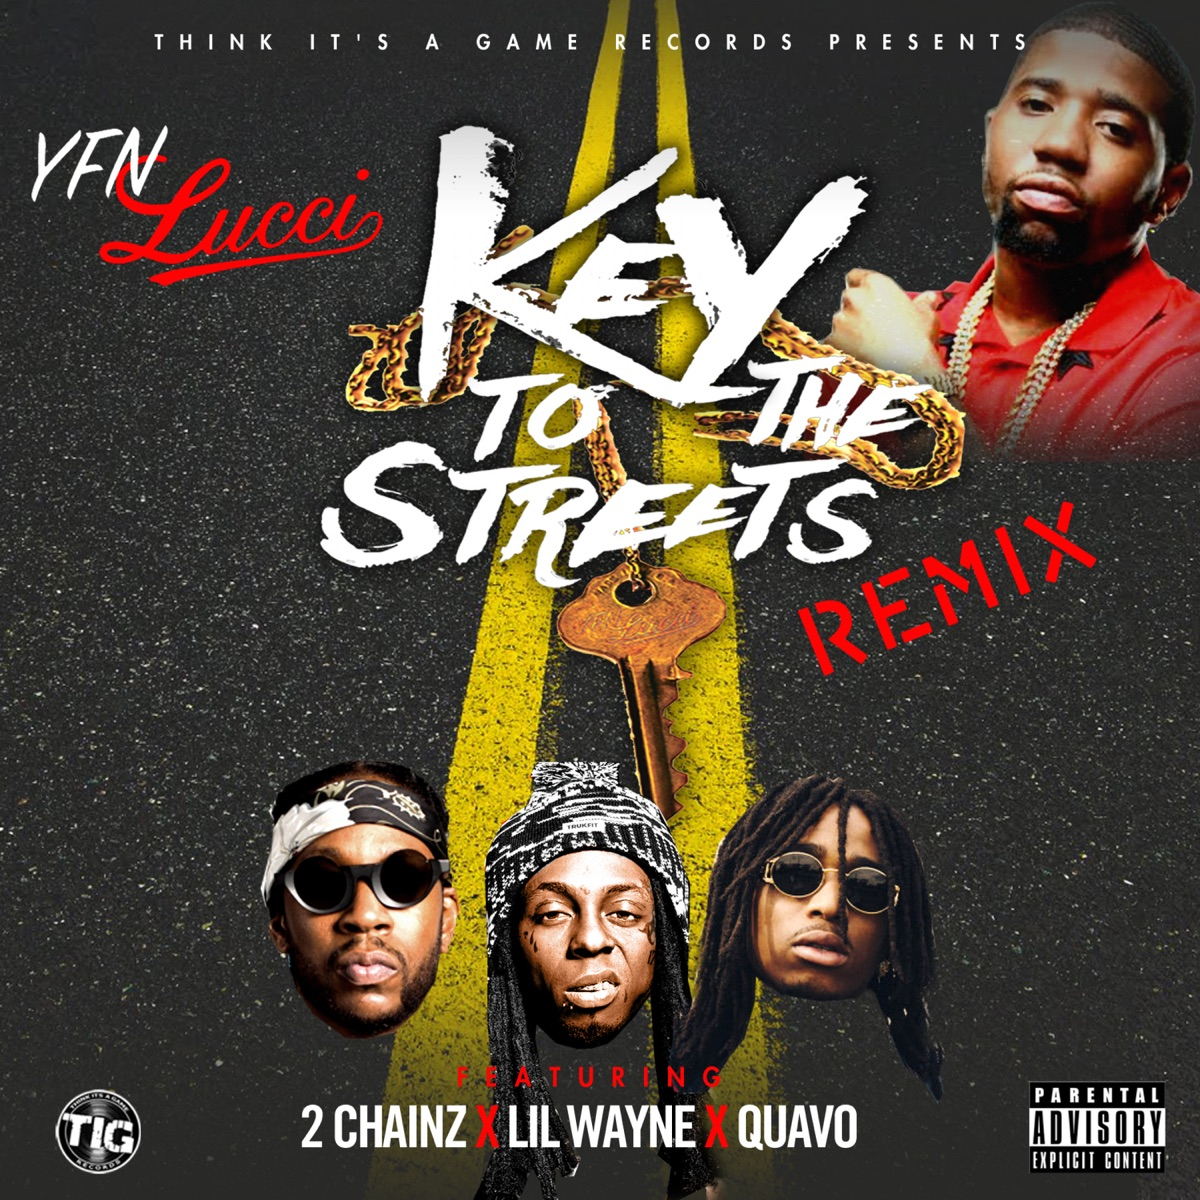 Key to the Streets feat 2 Chainz Lil Wayne  Quavo Remix - Single YFN Lucci CD cover